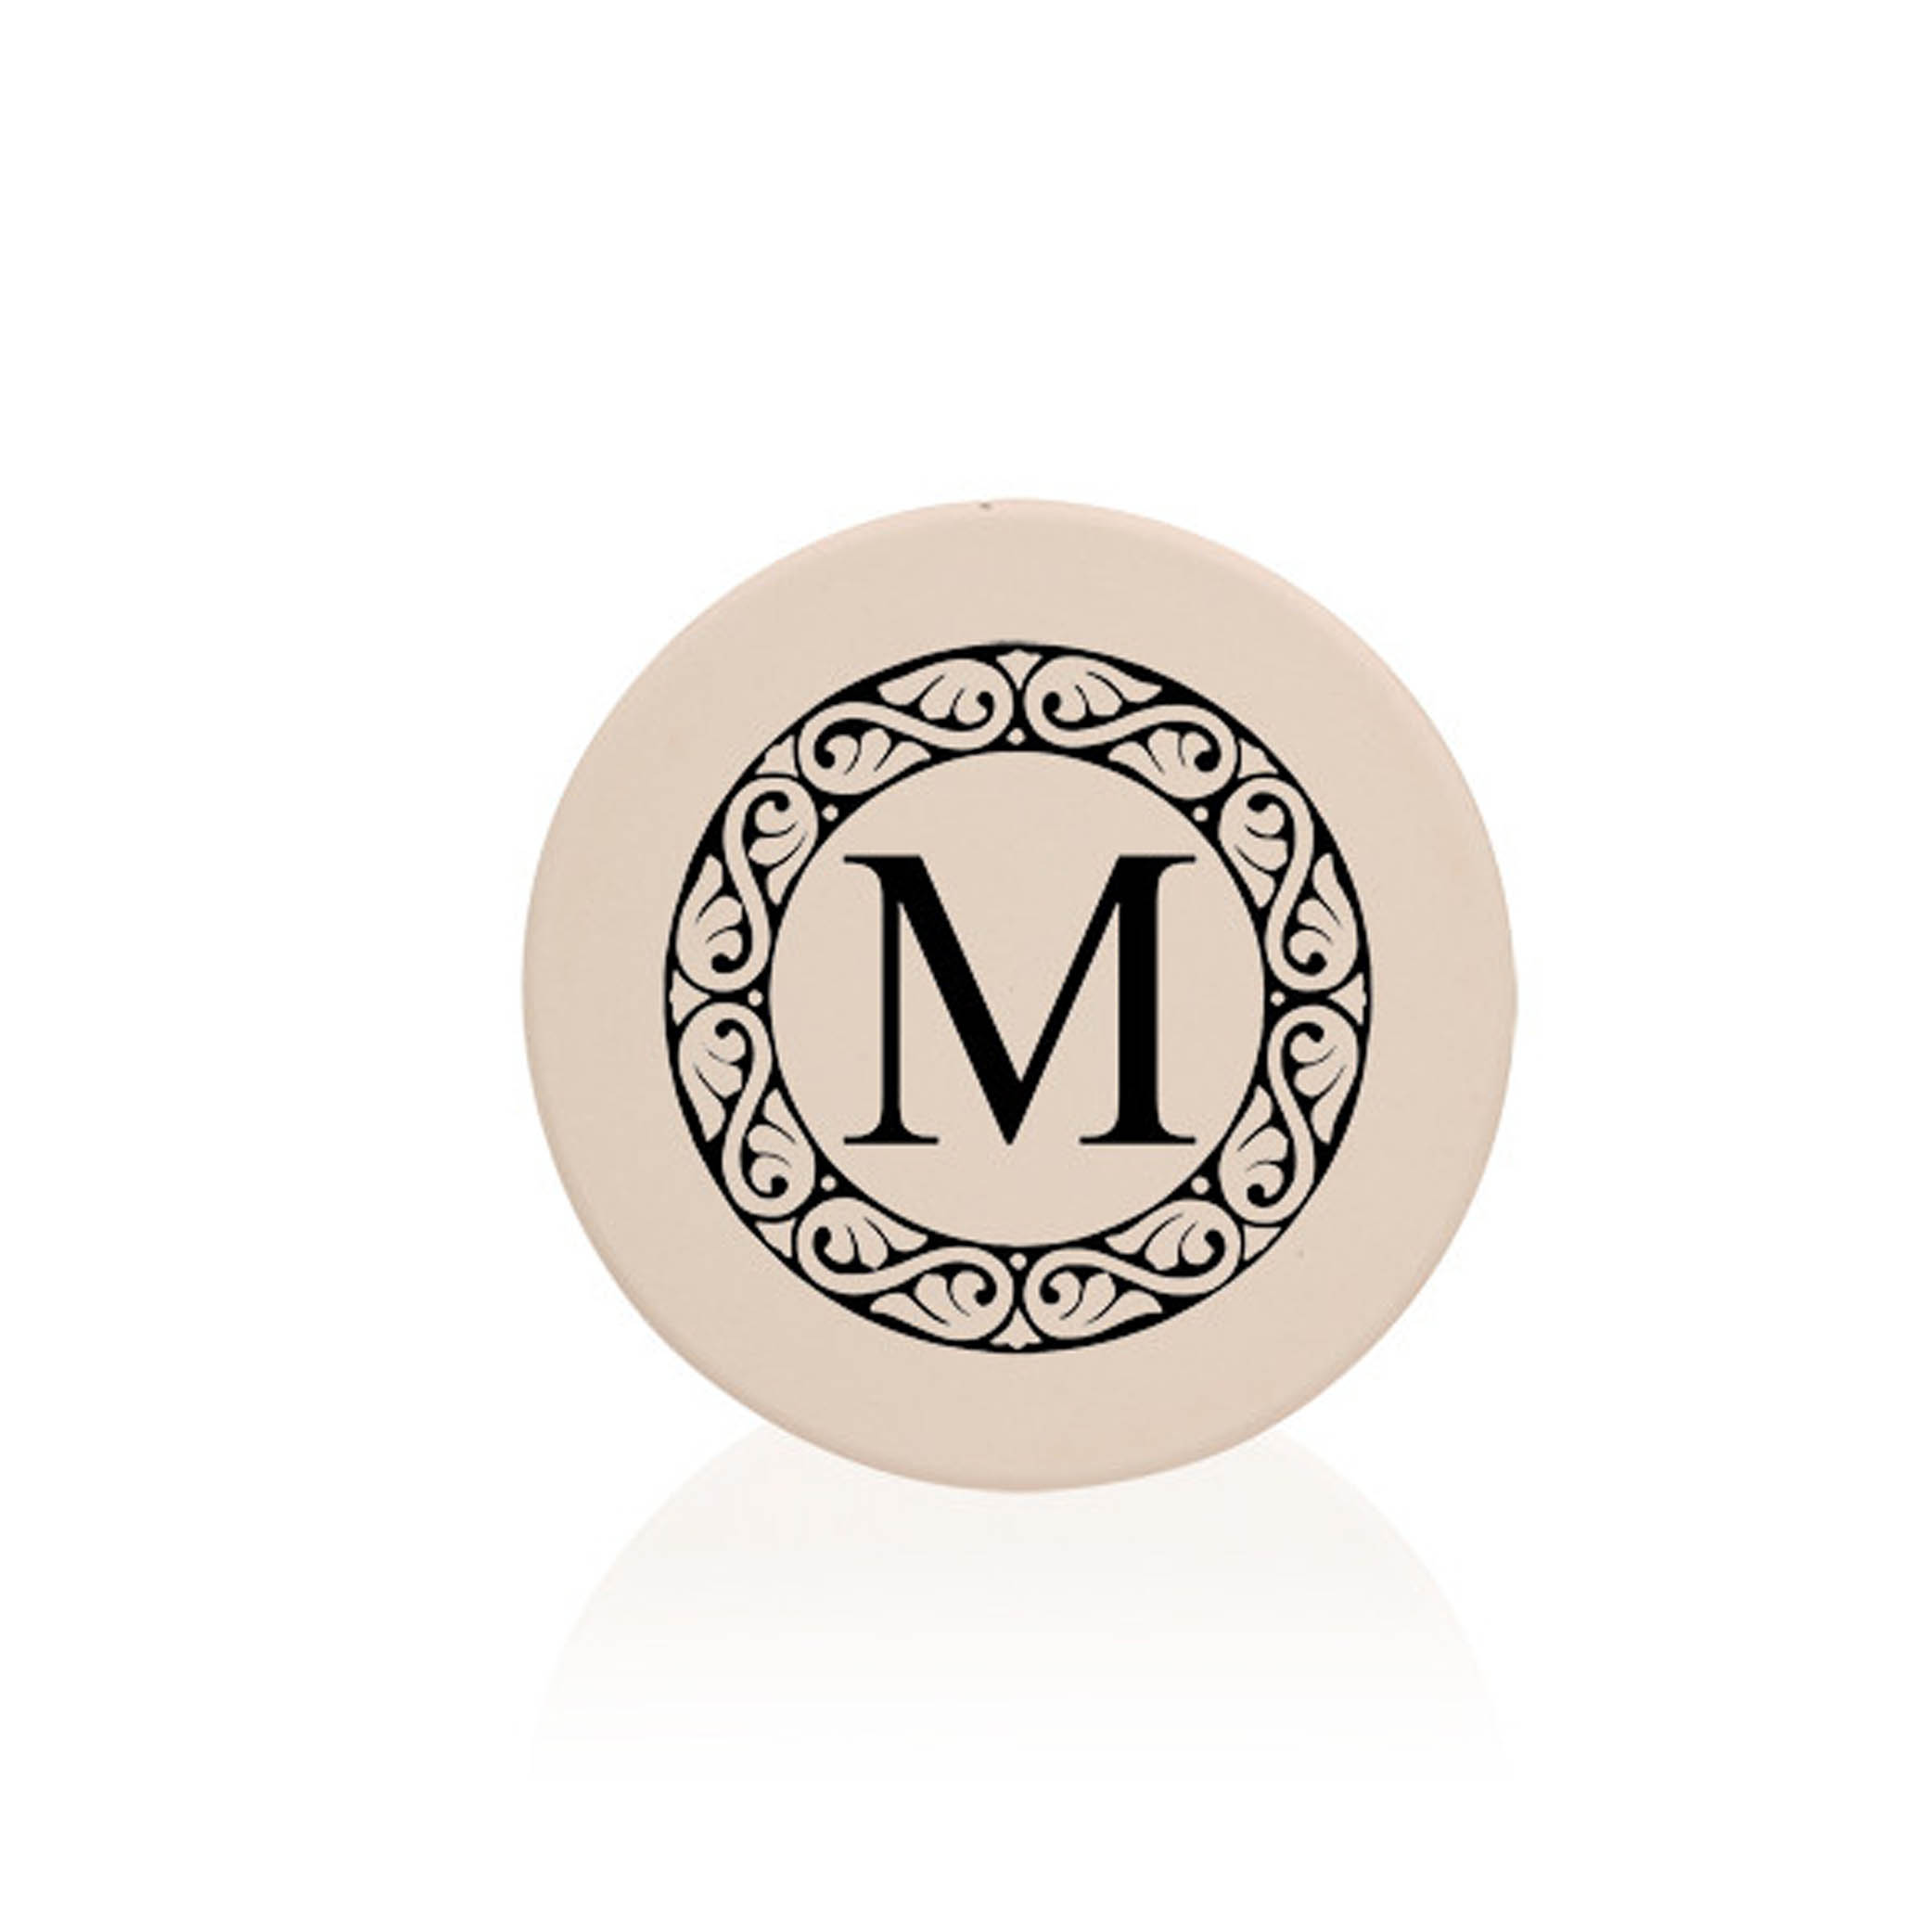 Full Color Personalized Ceramic/ Glass Coasters